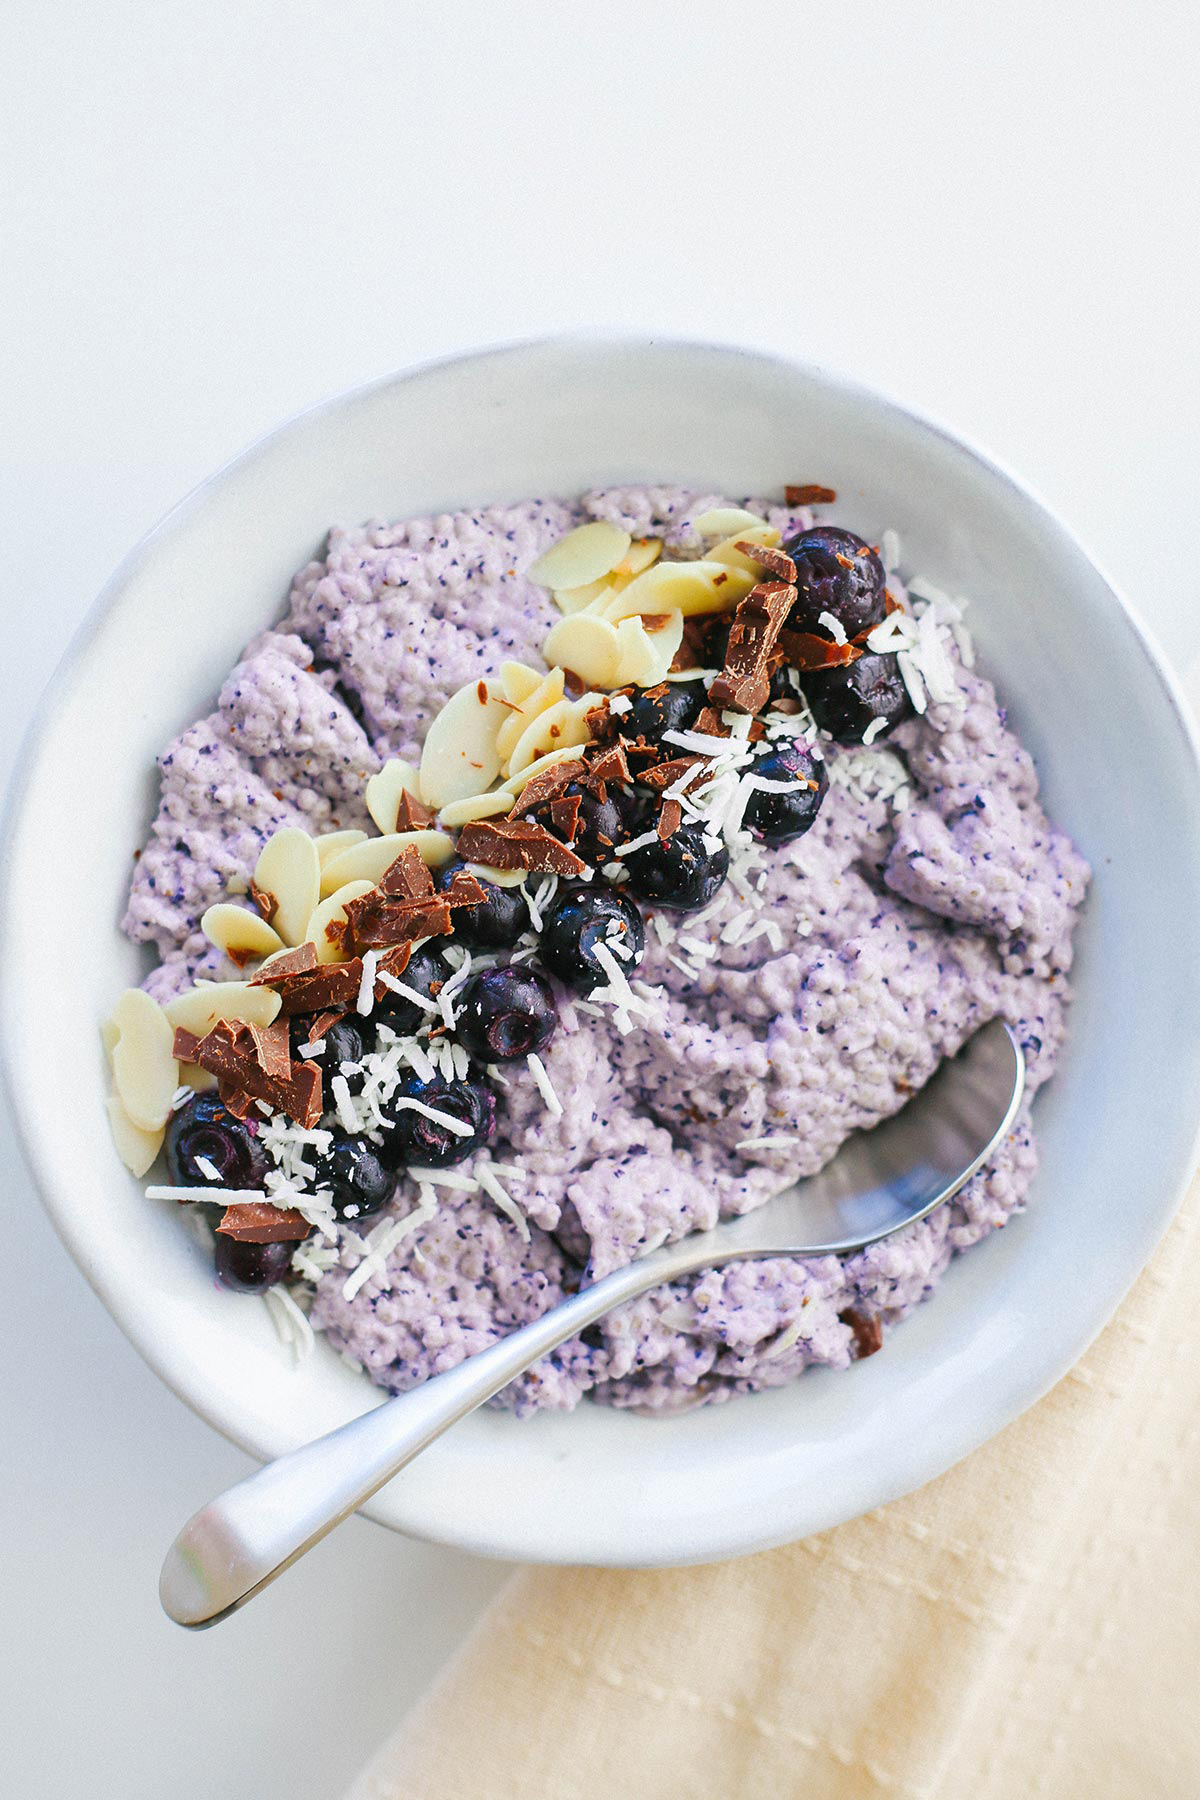 Blueberry Chia Pudding for keto and low carb. Easy recipe for breakfast.